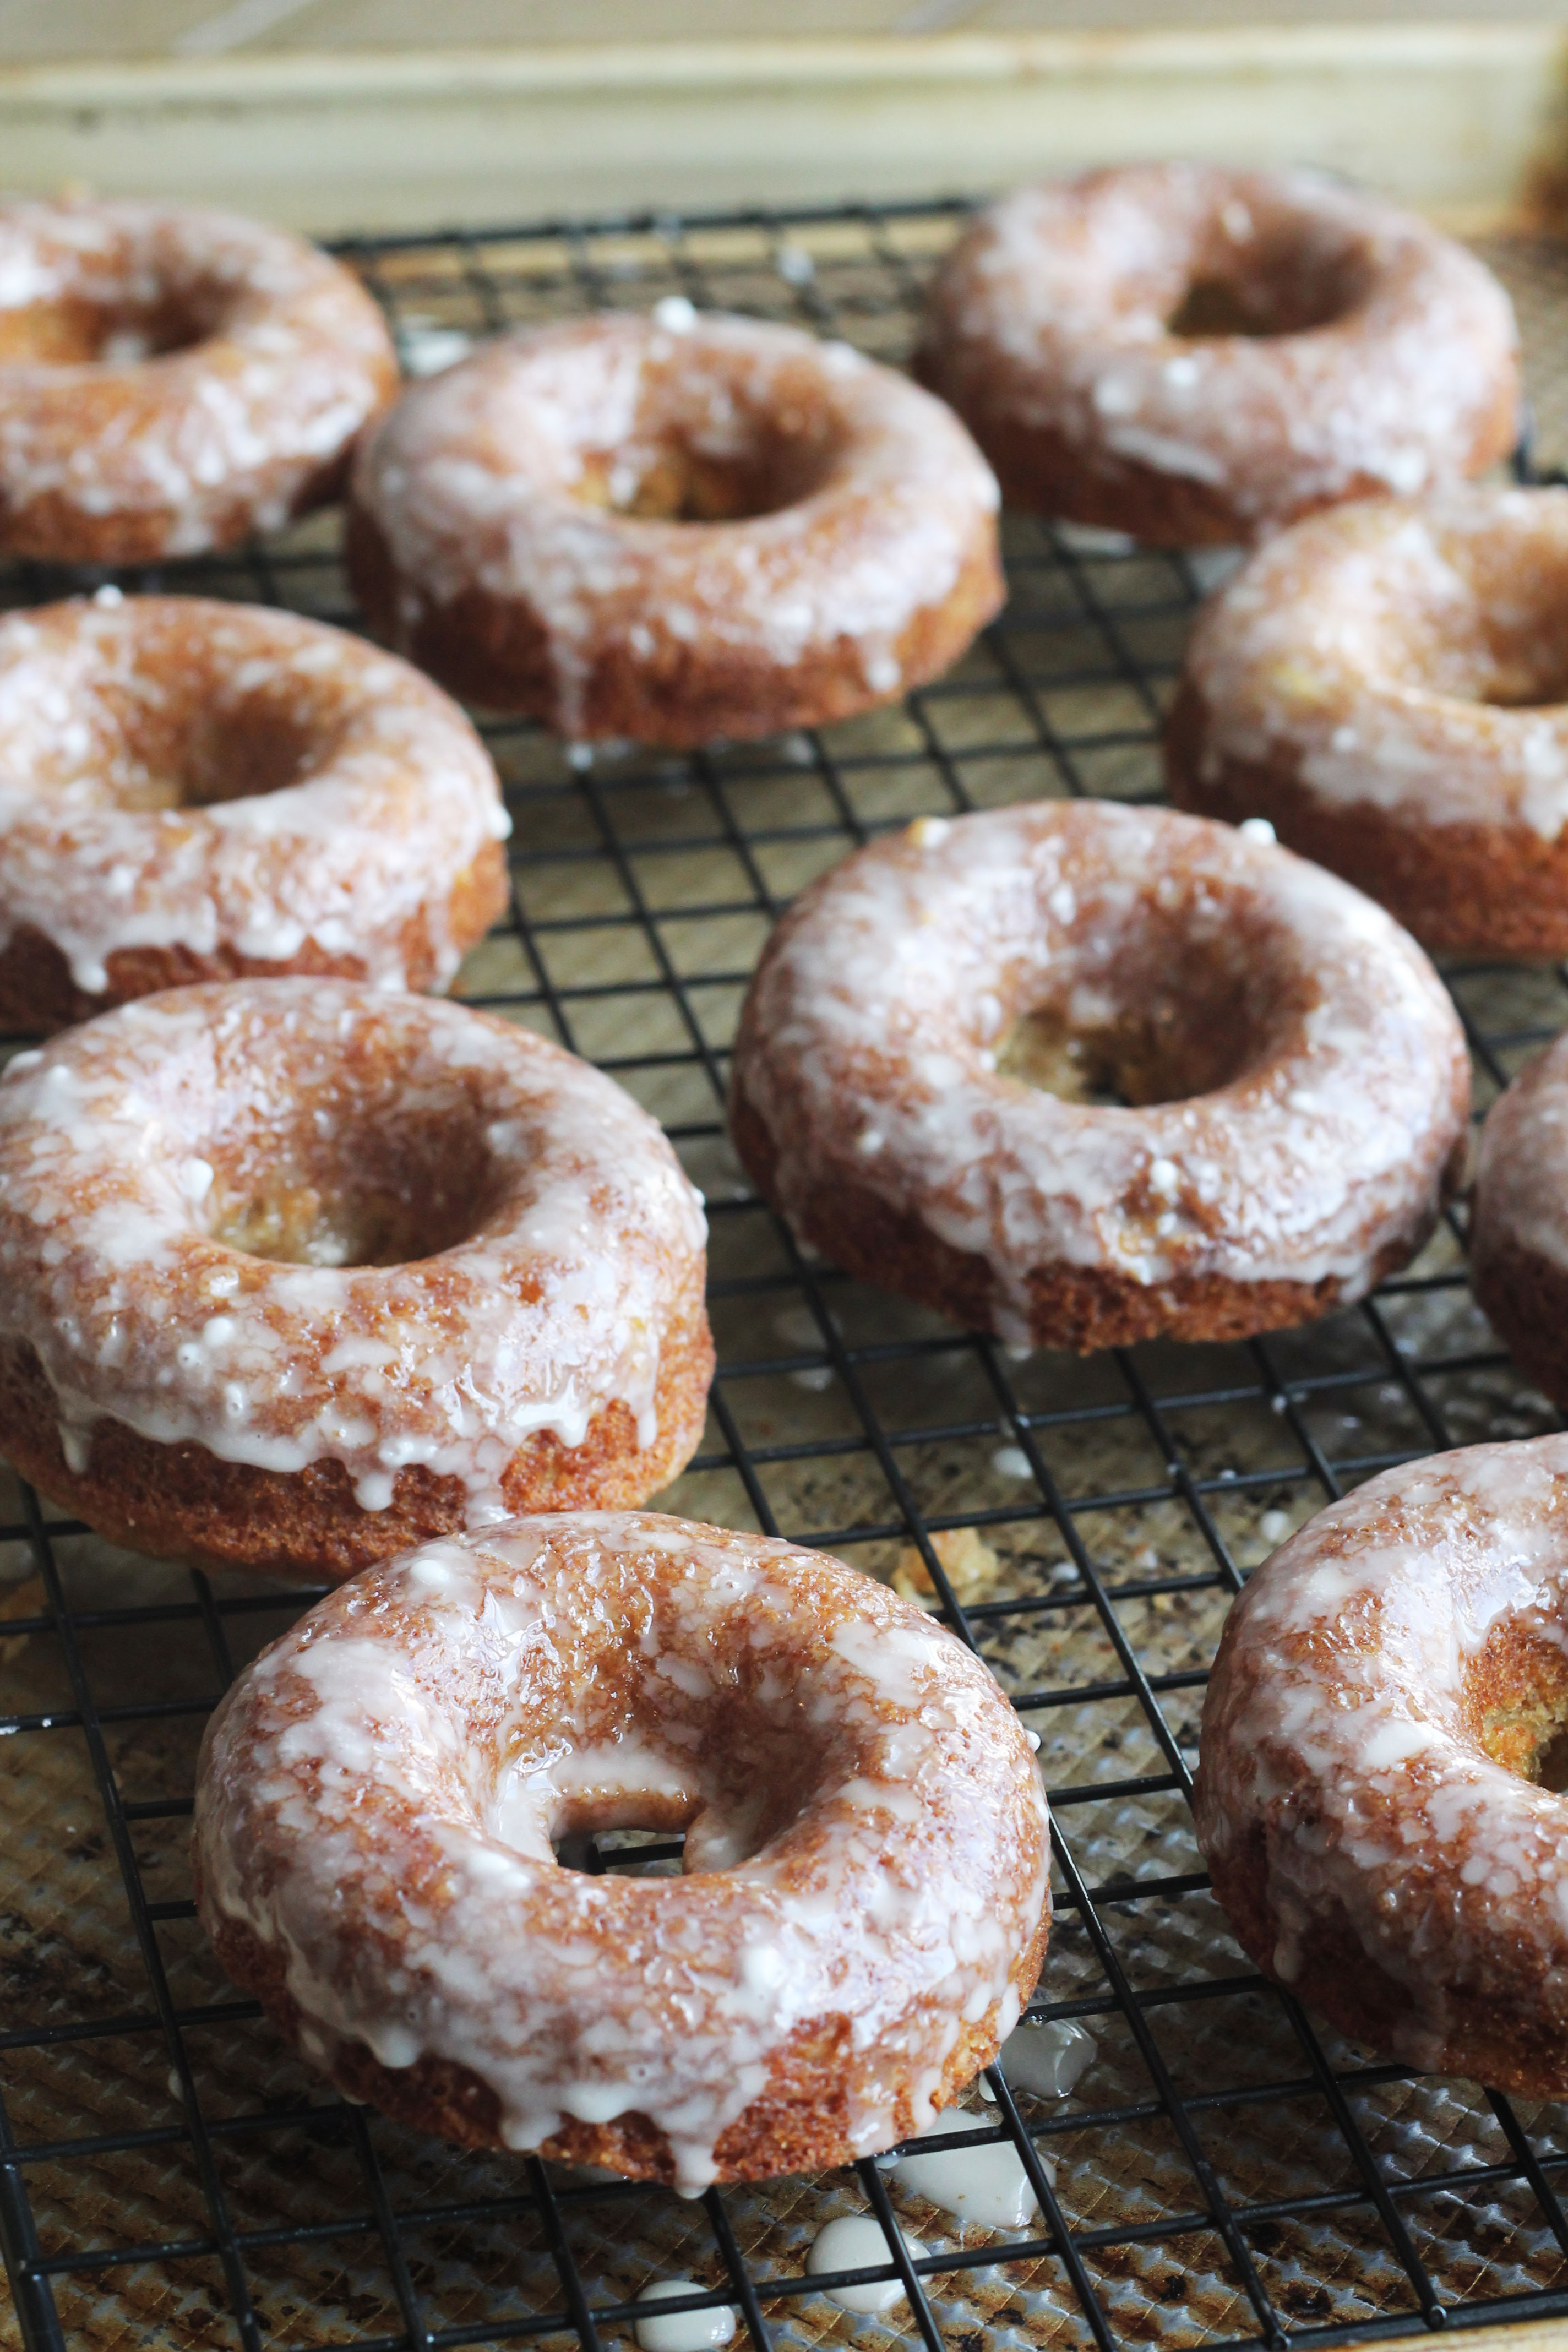 Apple Cider Donuts that are baked and then coated in a sweet cider glaze